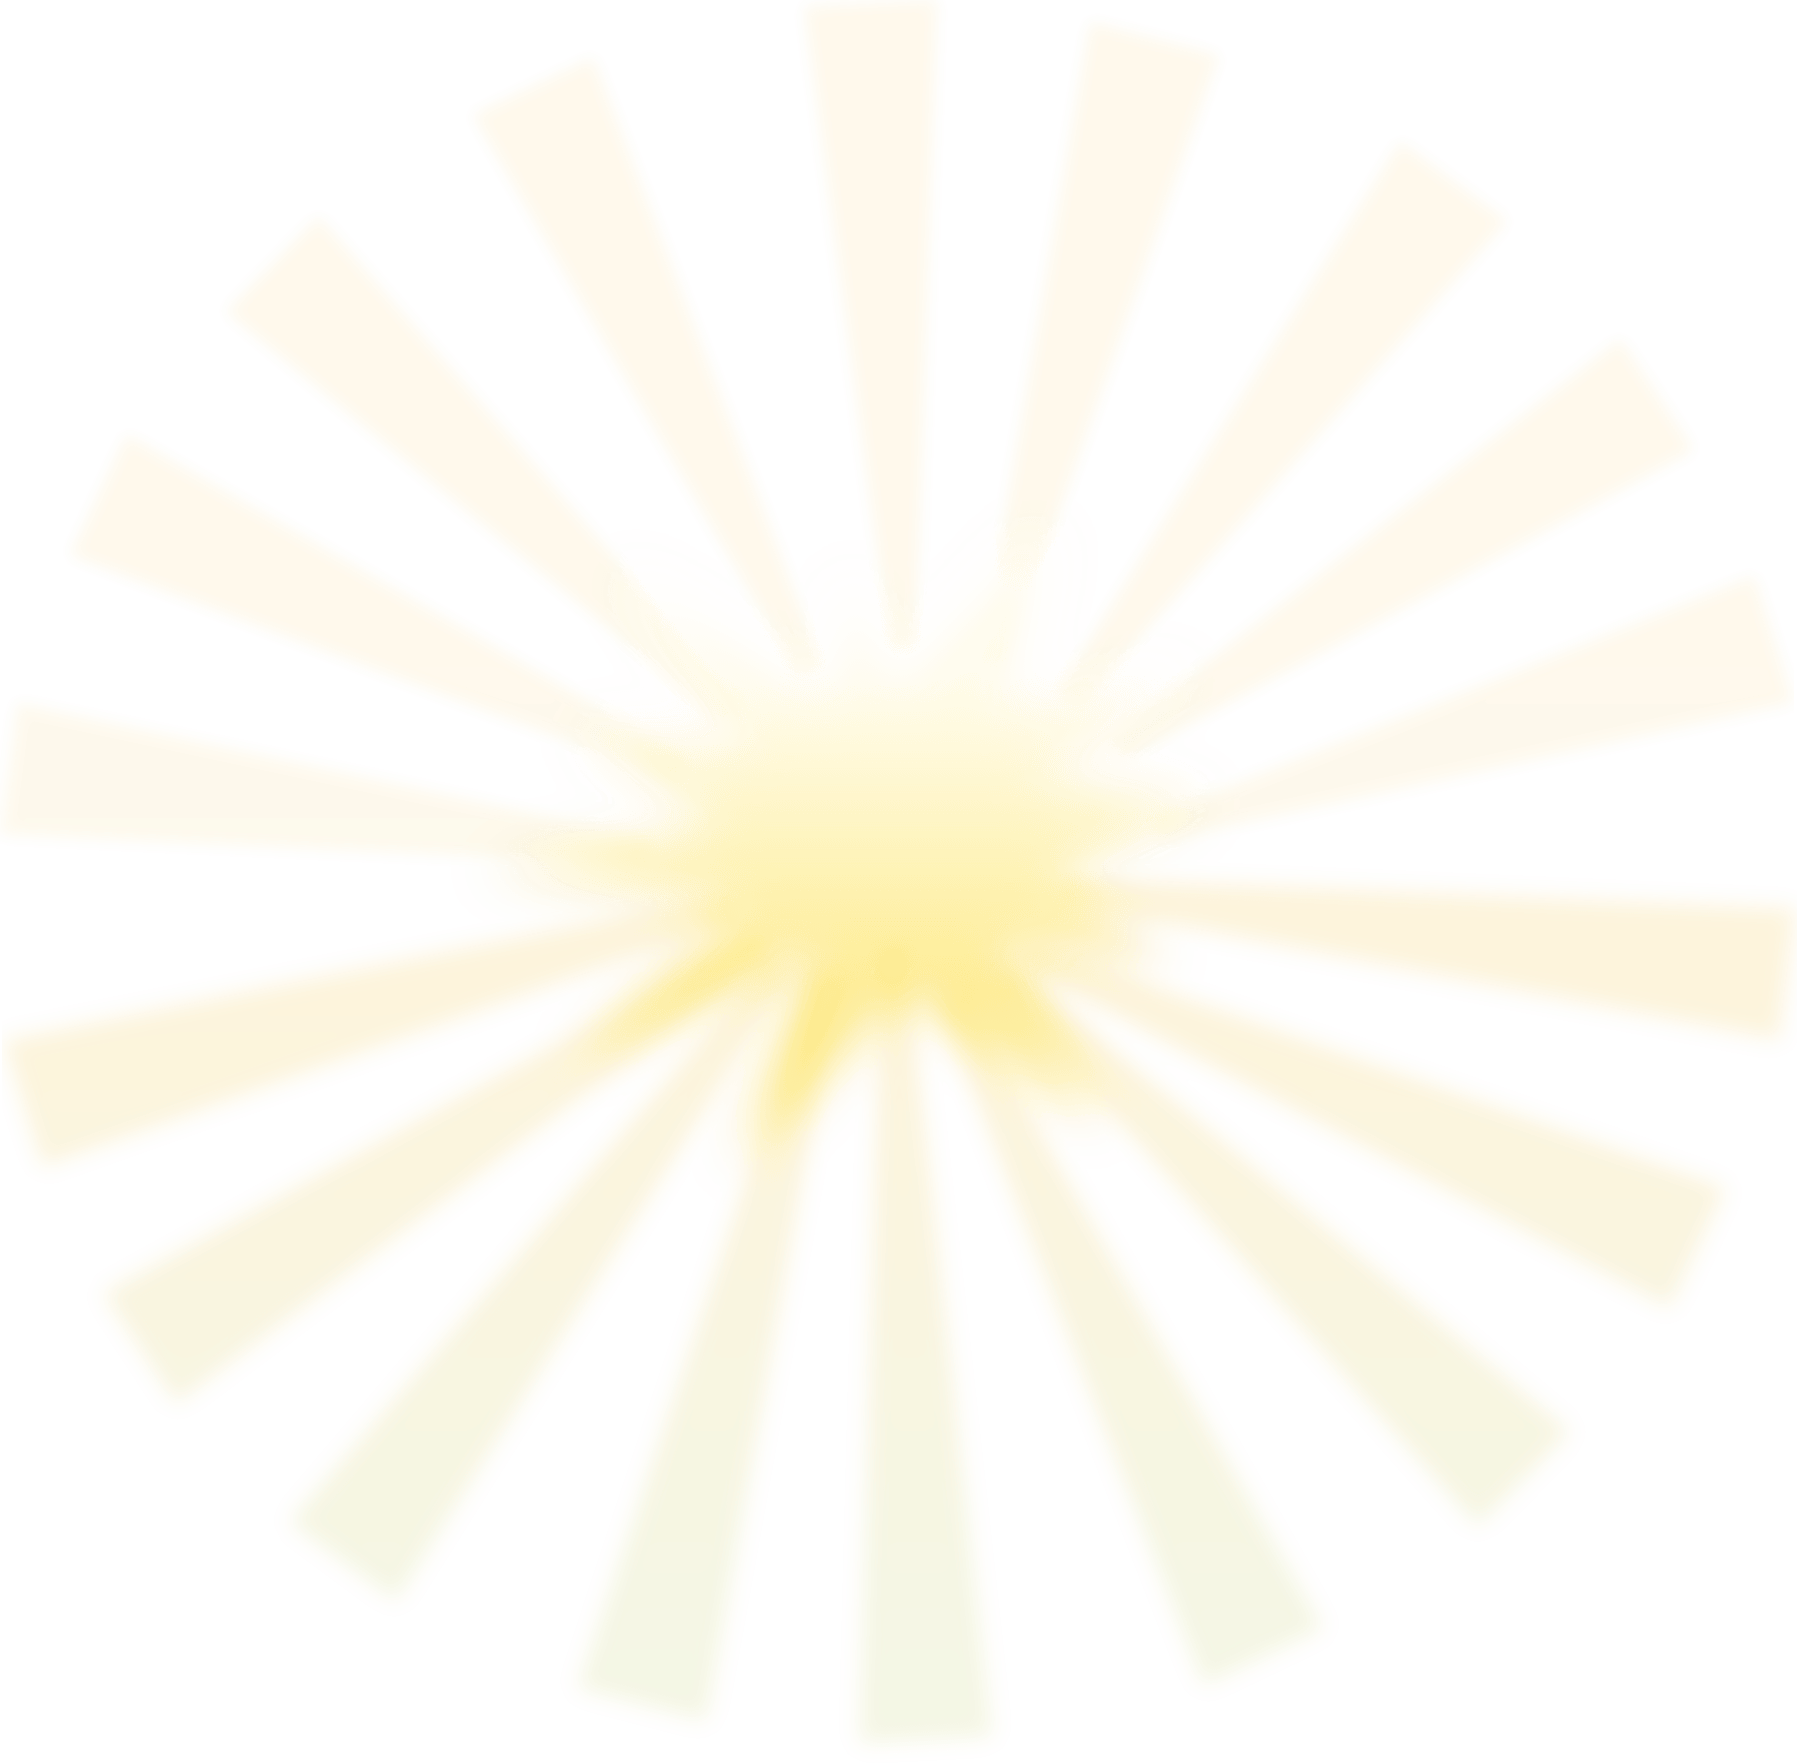 Rays of sunlight png. Hq ray transparent images